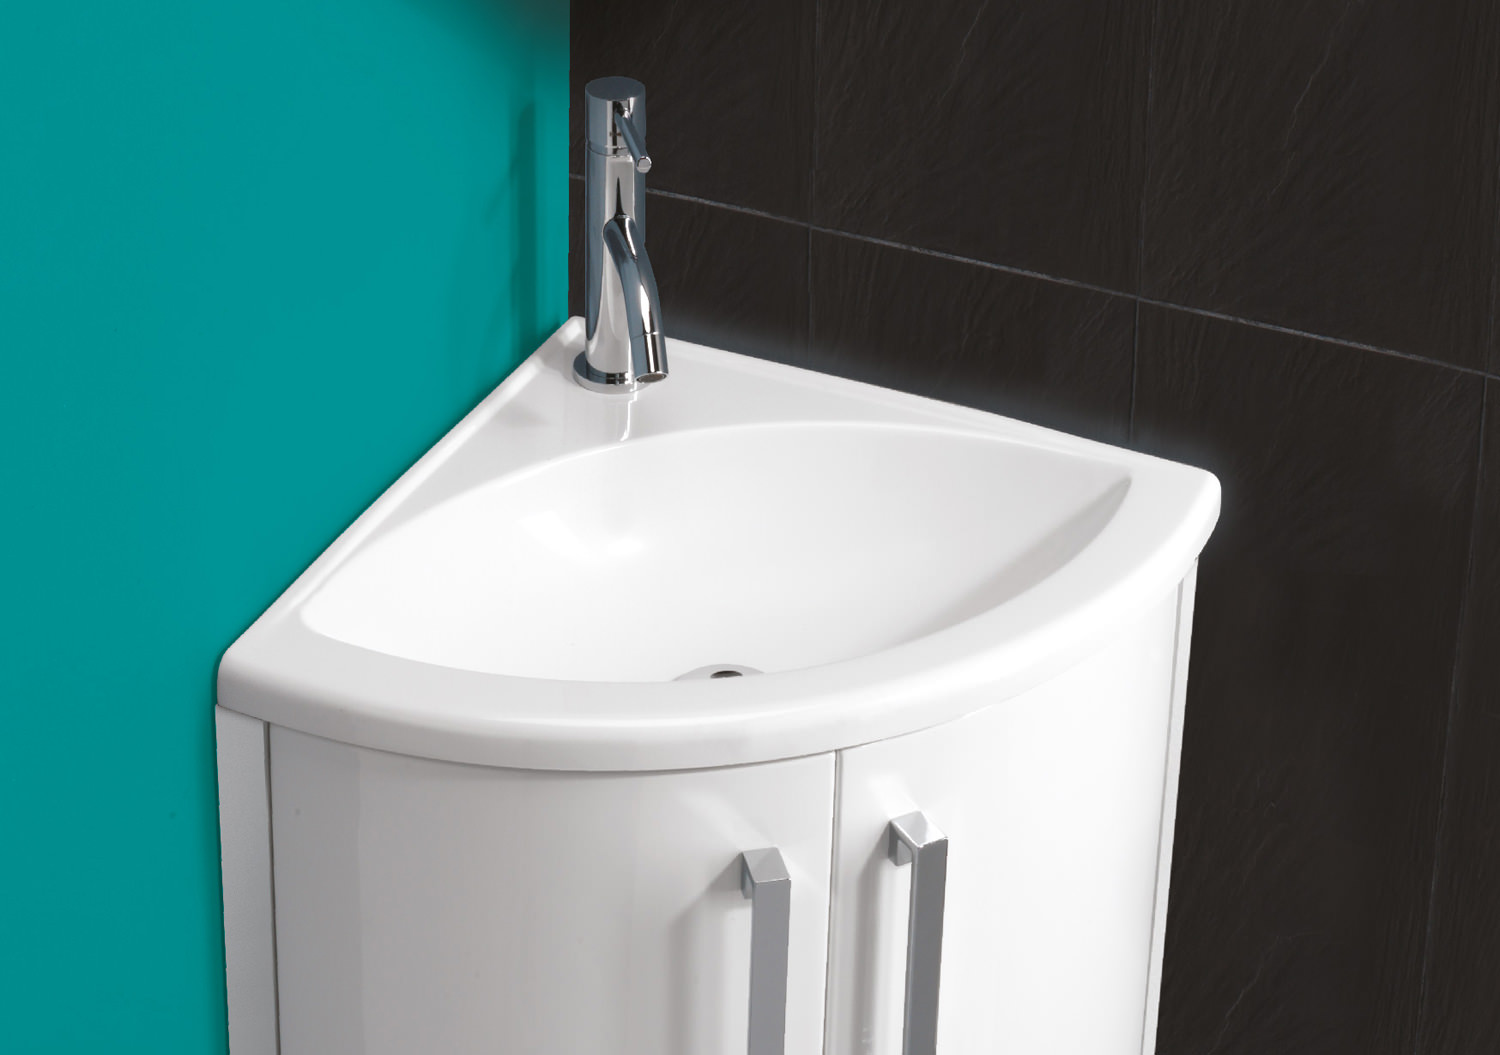 Corner Washbasins : ... basins corner basins hib solo wave corner washbasin 625 x 400mm